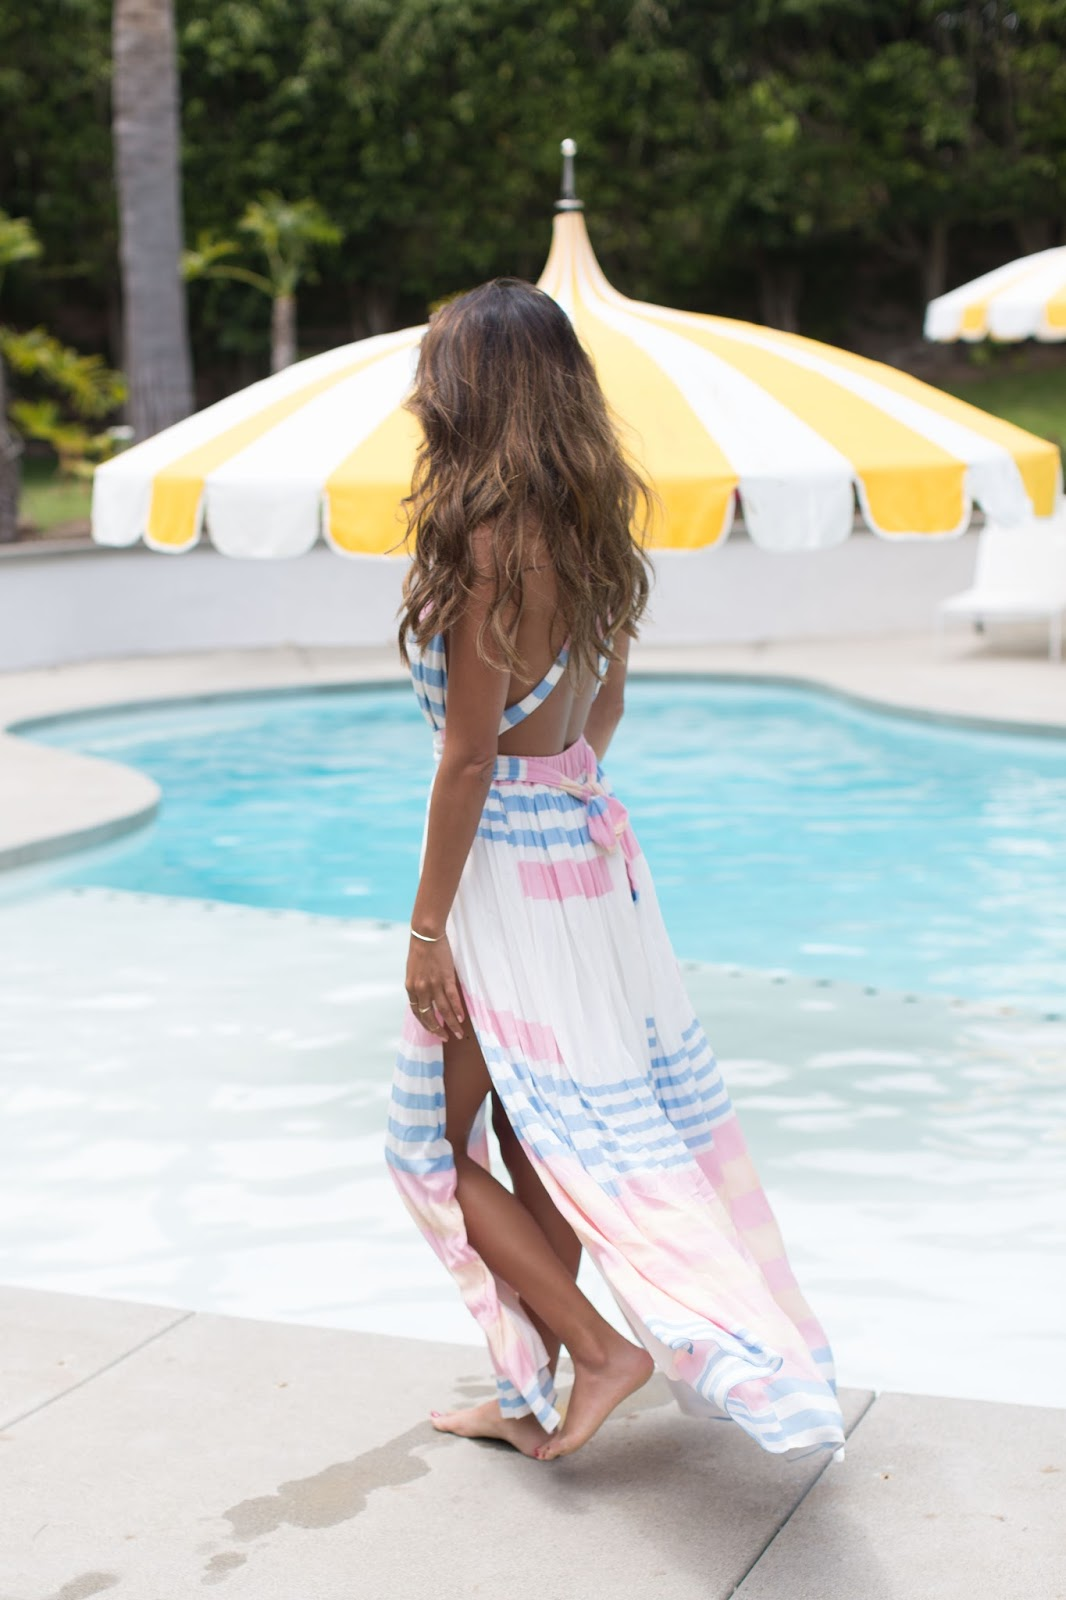 How to wear maxi dress at pool, Mara hoffman crinkle crepe maxi dress